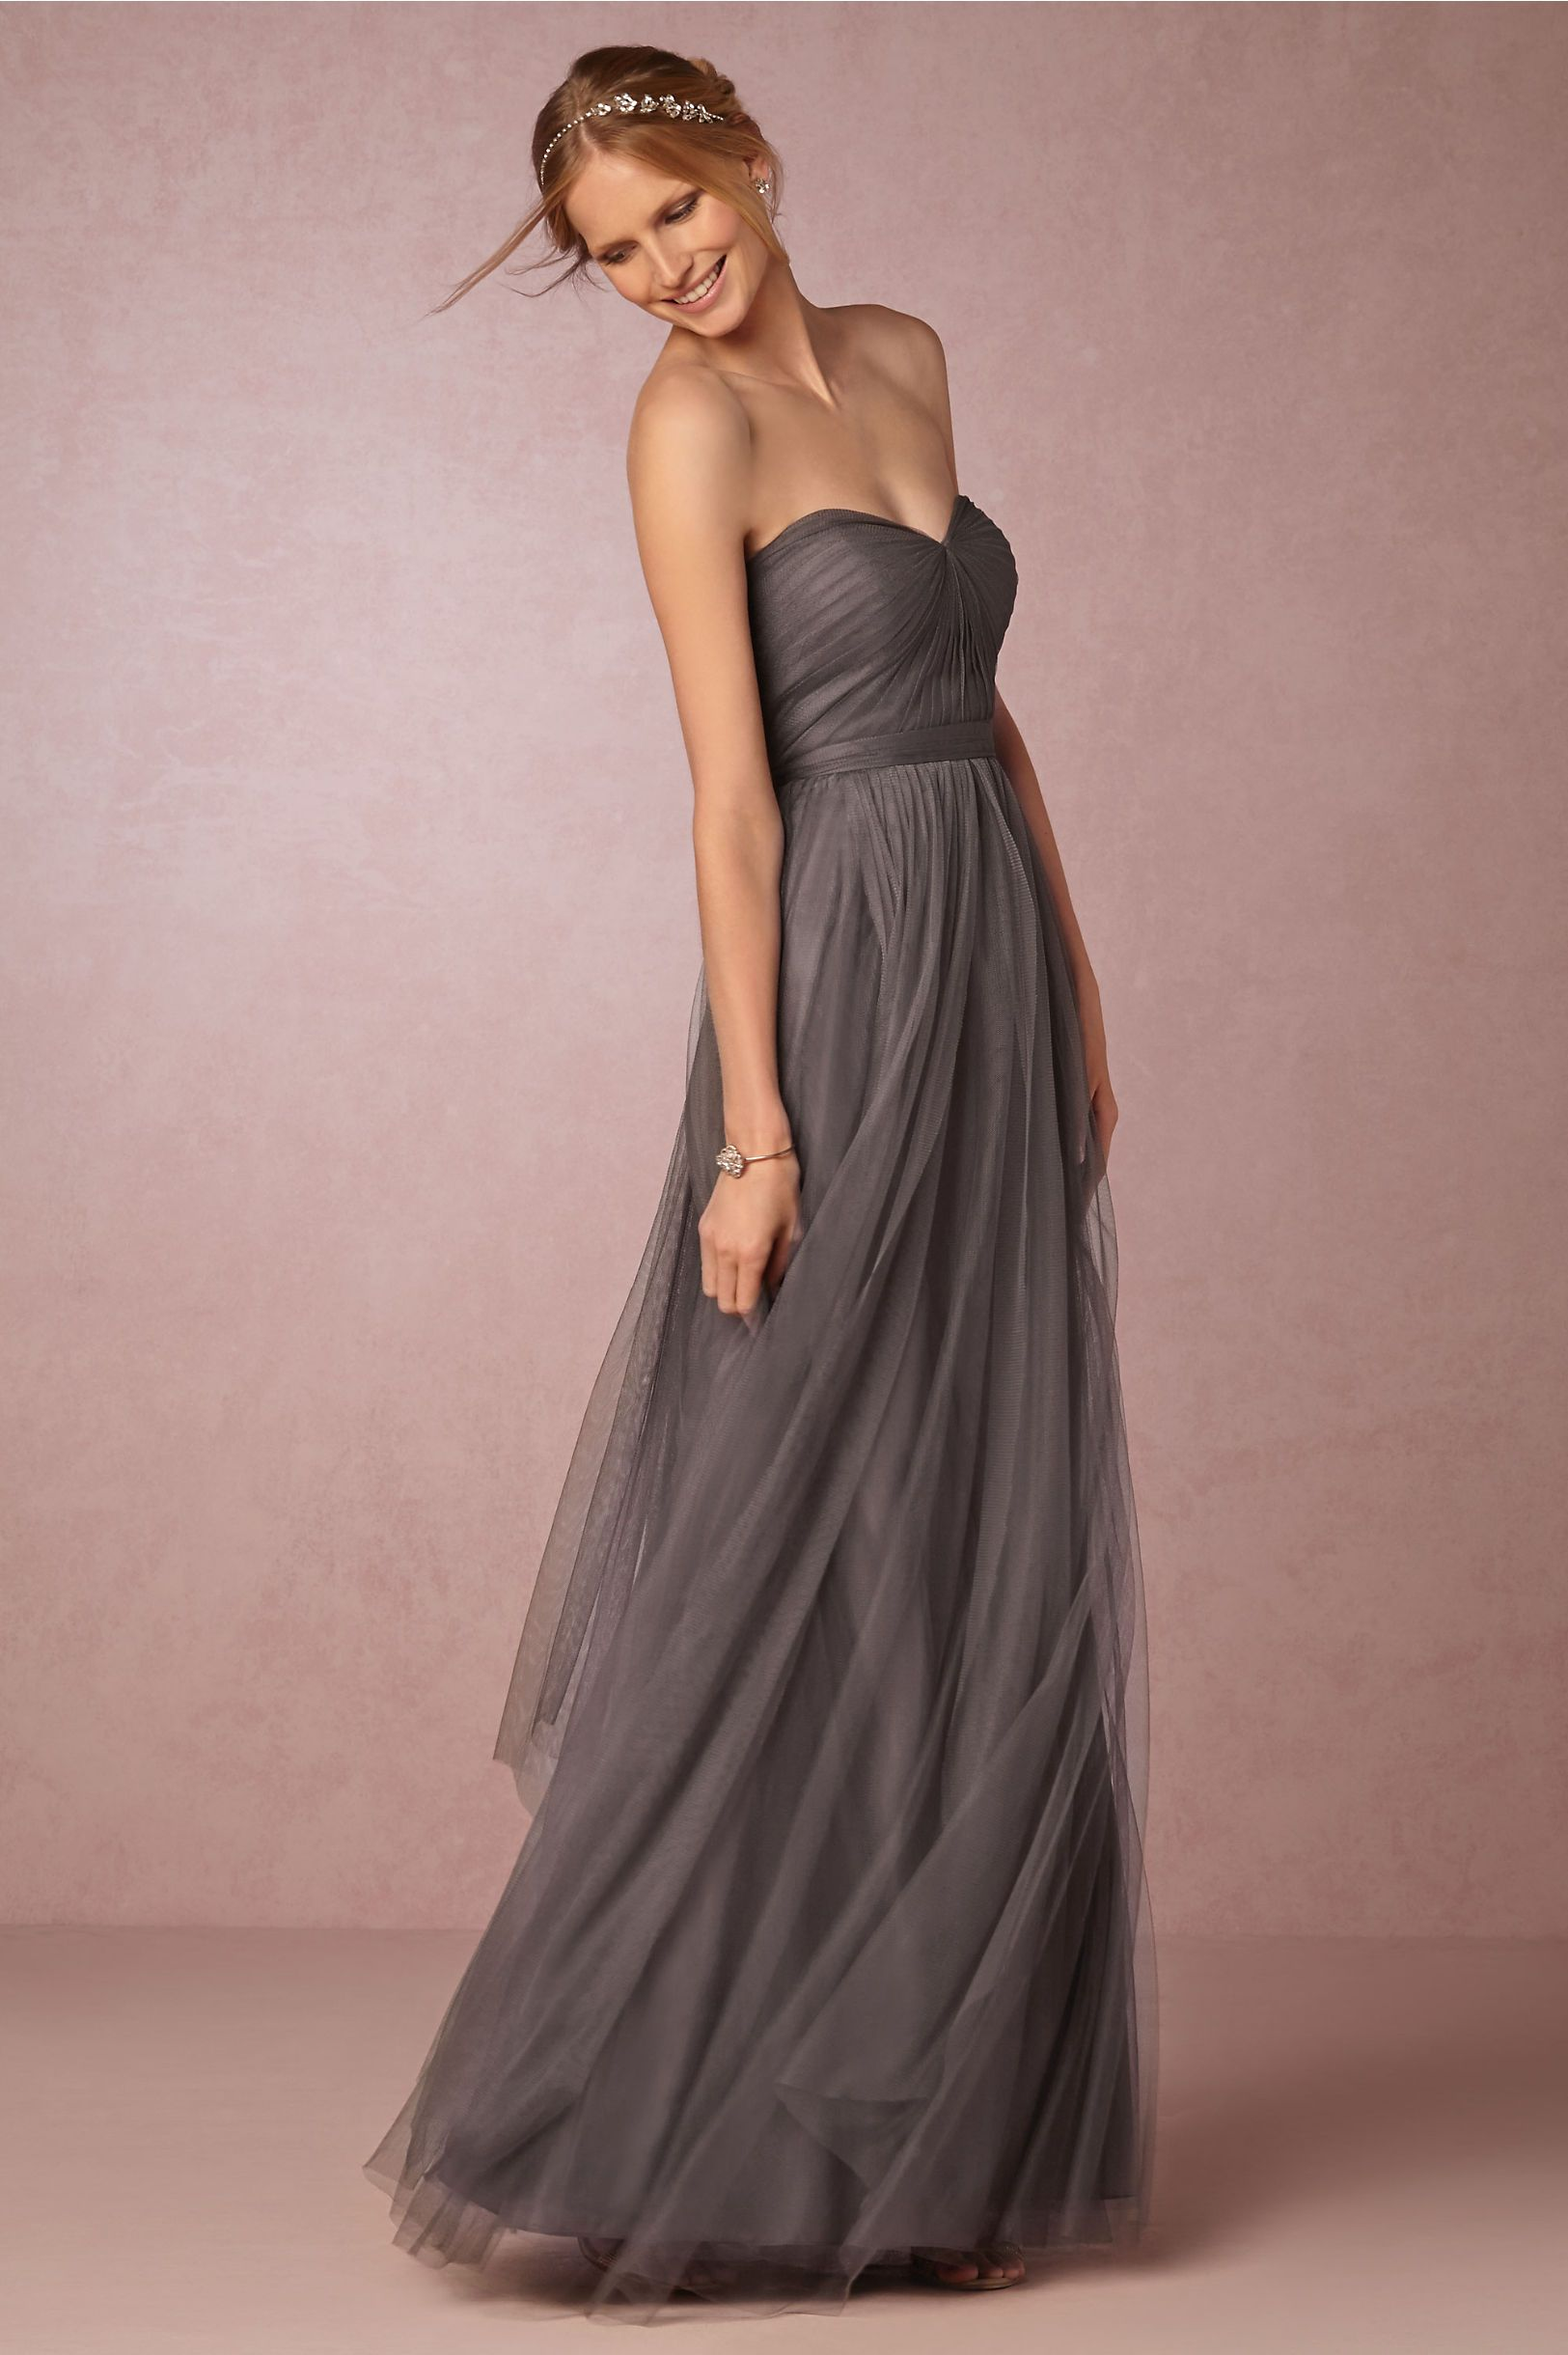 Long dresses for wedding reception  Annabelle Dress in Bridesmaids Bridesmaid Dresses at BHLDN  Wedding